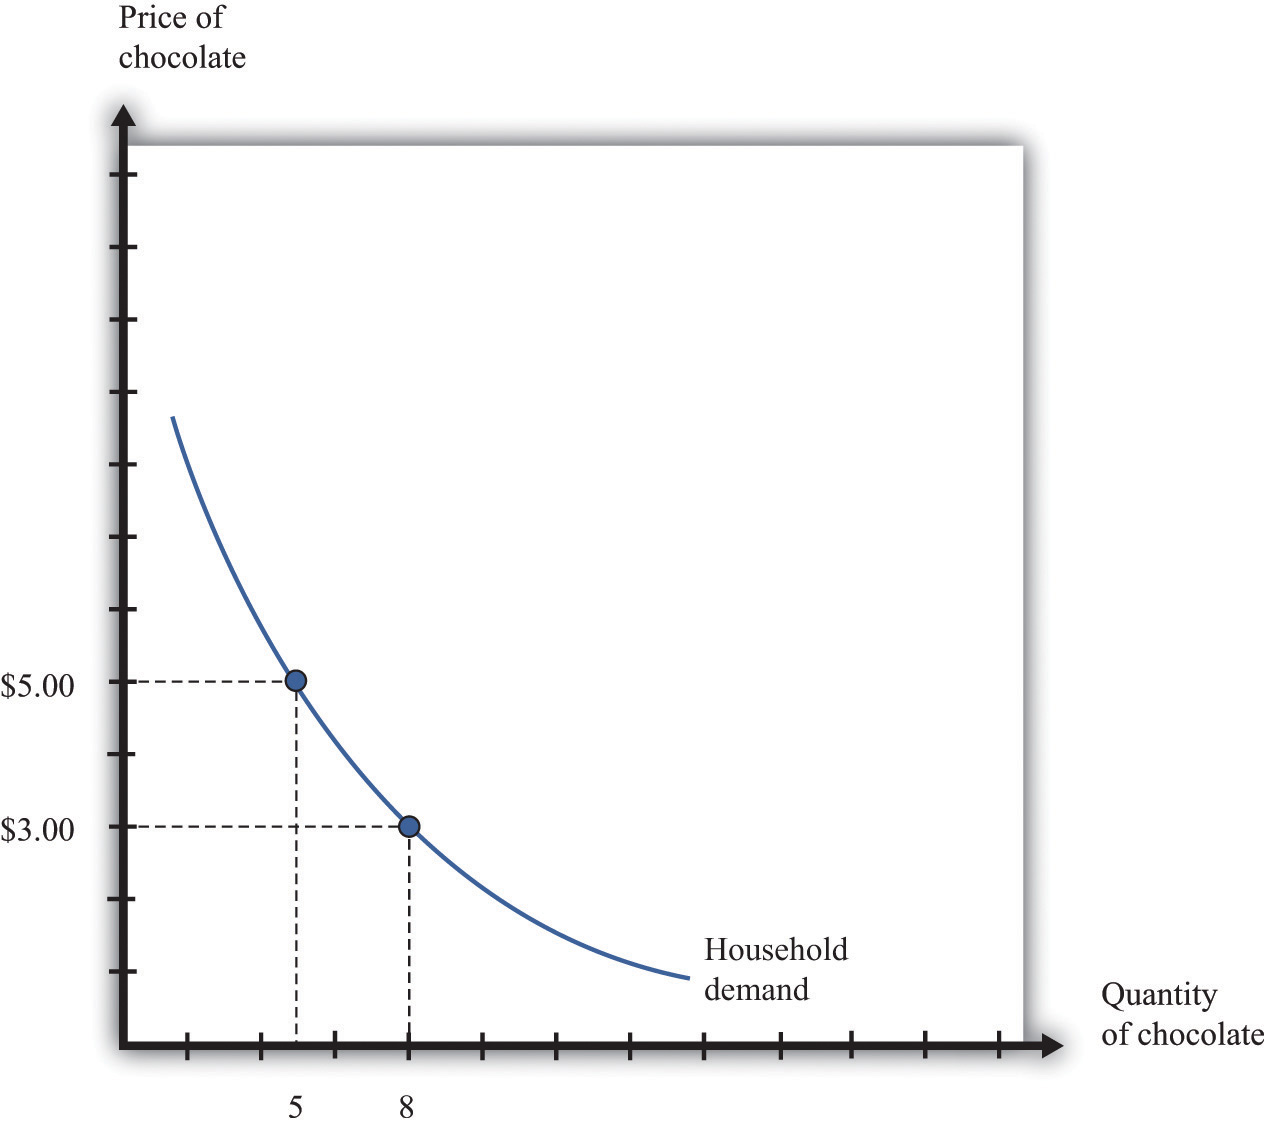 The Household Demand Curve Shows The Quantity Of Chocolate Bars Demanded By  An Individual Household At Each Price It Has A Negative Slope: Higher  Prices